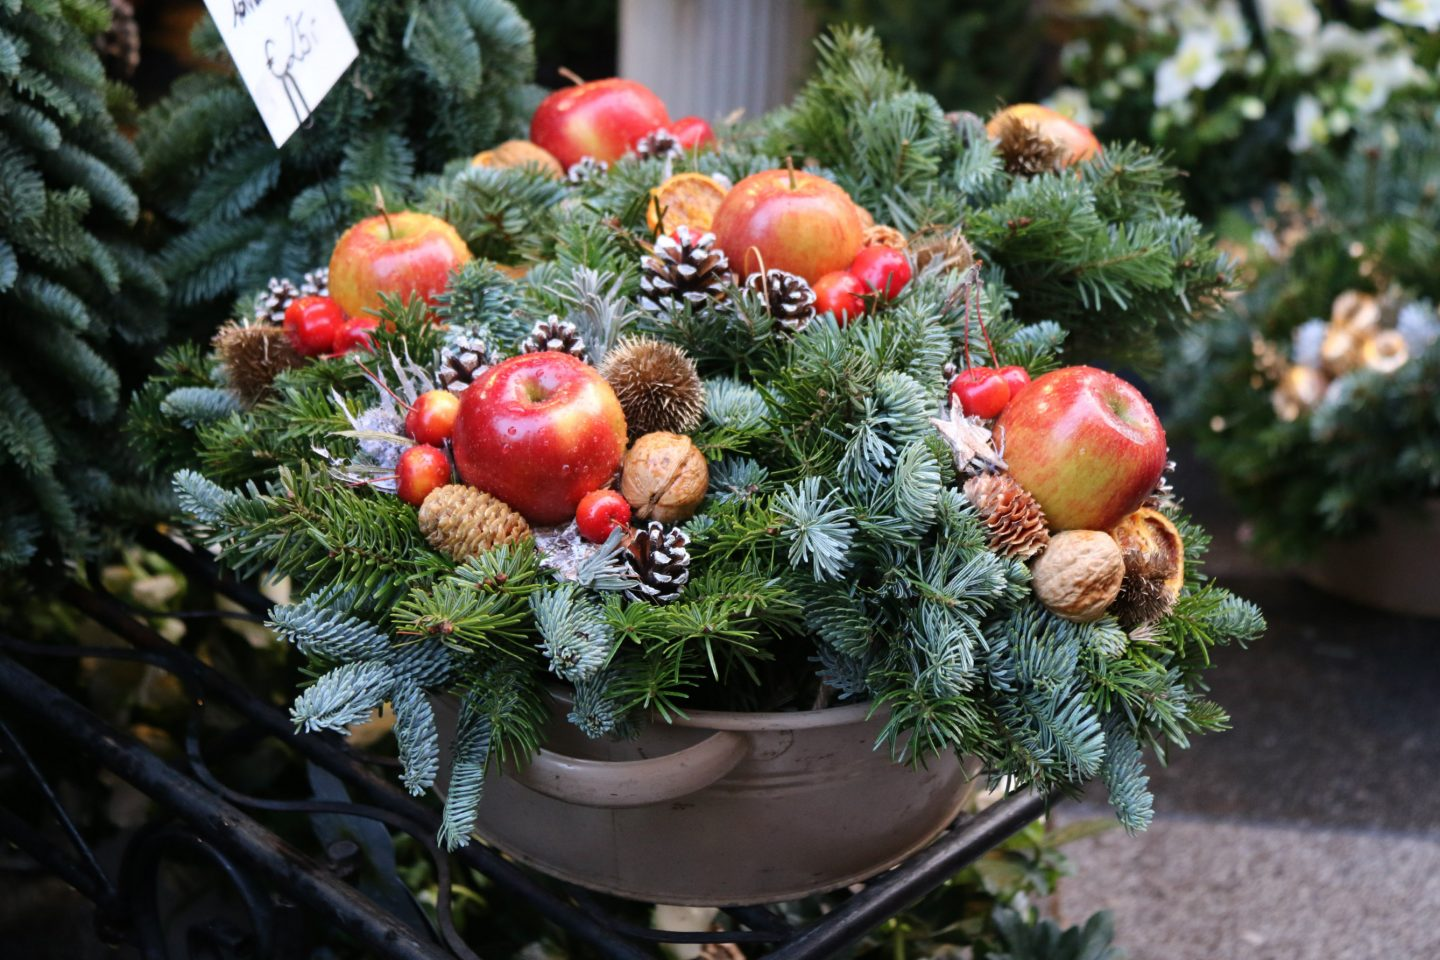 Vienna Christmas Market wreath 2